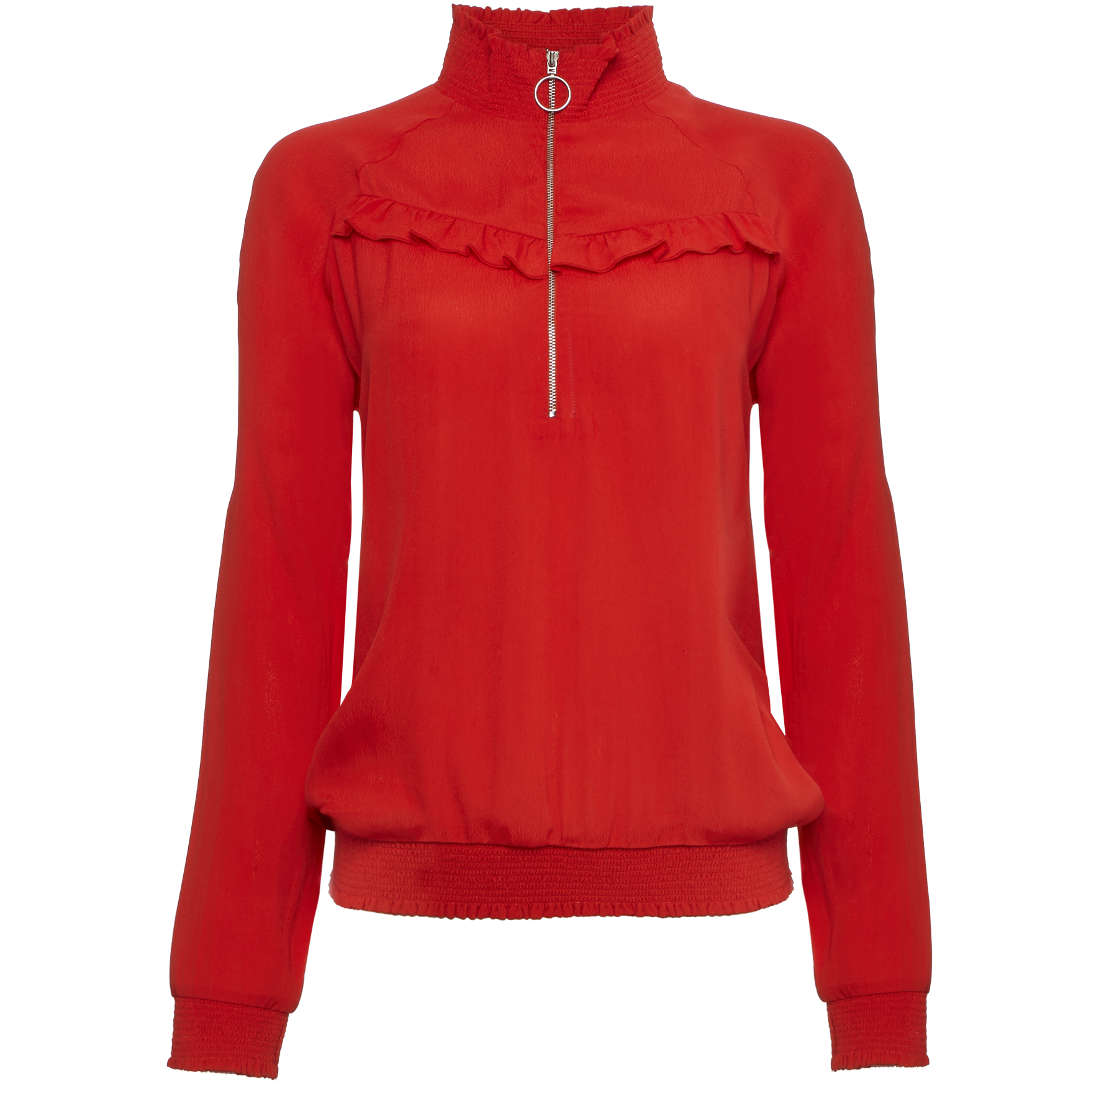 Image of Tramontana blouse i01-89-302 in het Rood